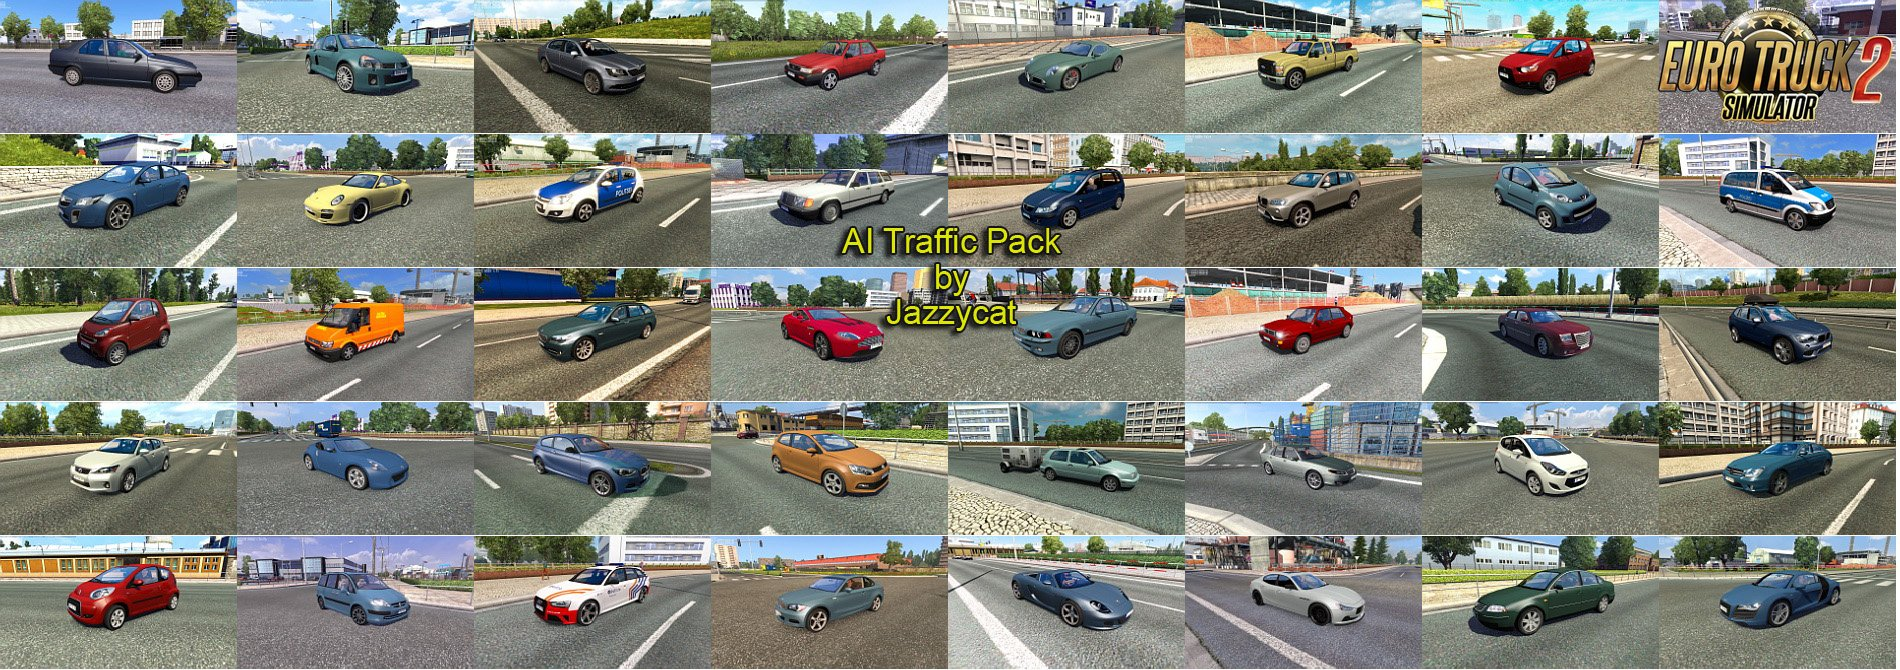 AI Traffic Pack v6.7 by Jazzycat